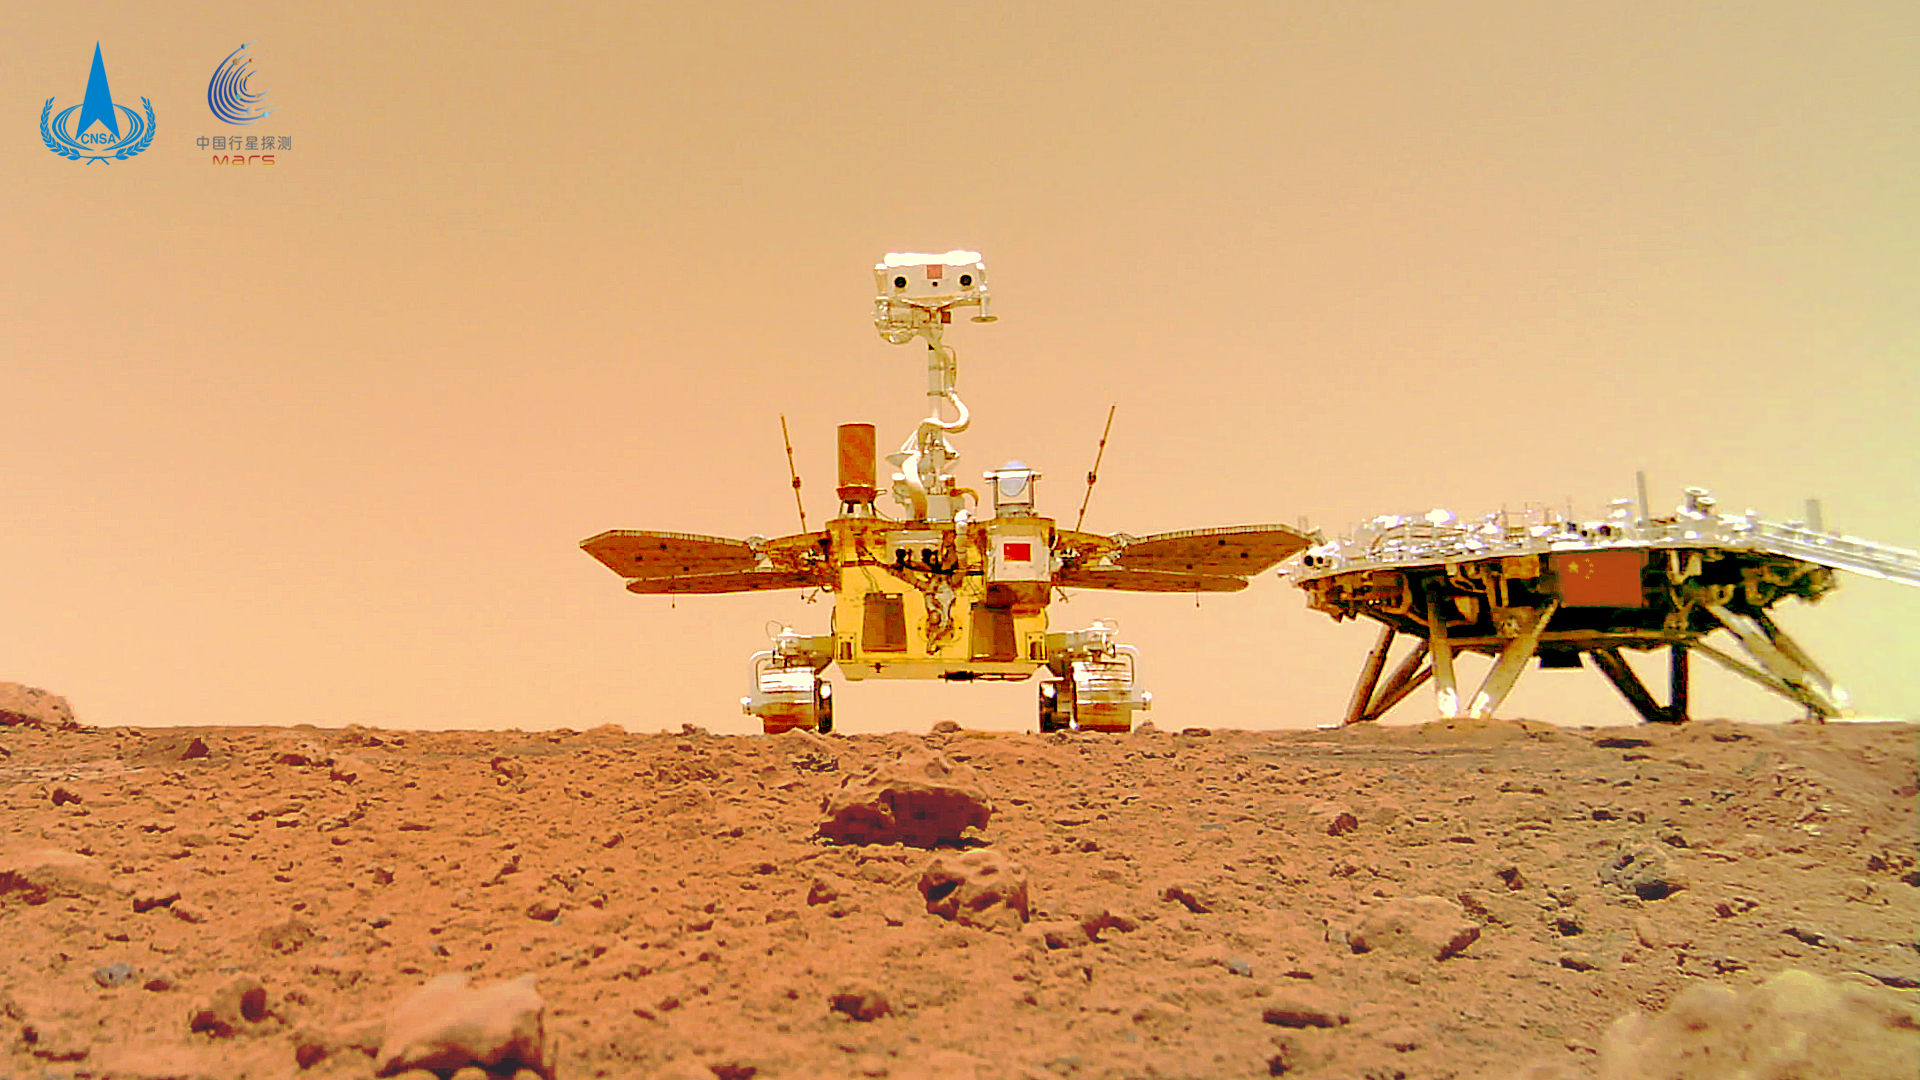 China's Zhurong rover on the surface of Mars, next to its landing platform.